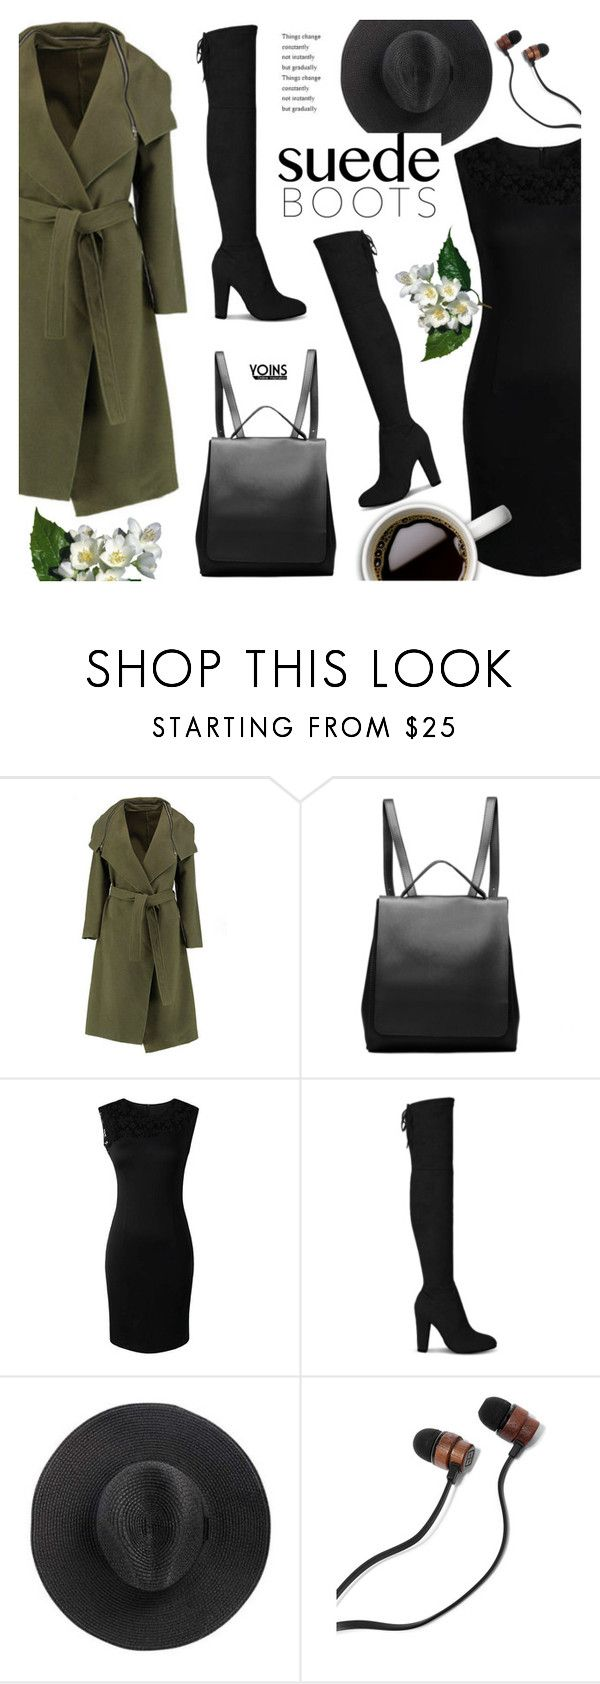 """""""Yoins Suede Boots (#17)"""" by alexandrazeres ❤ liked on Polyvore"""